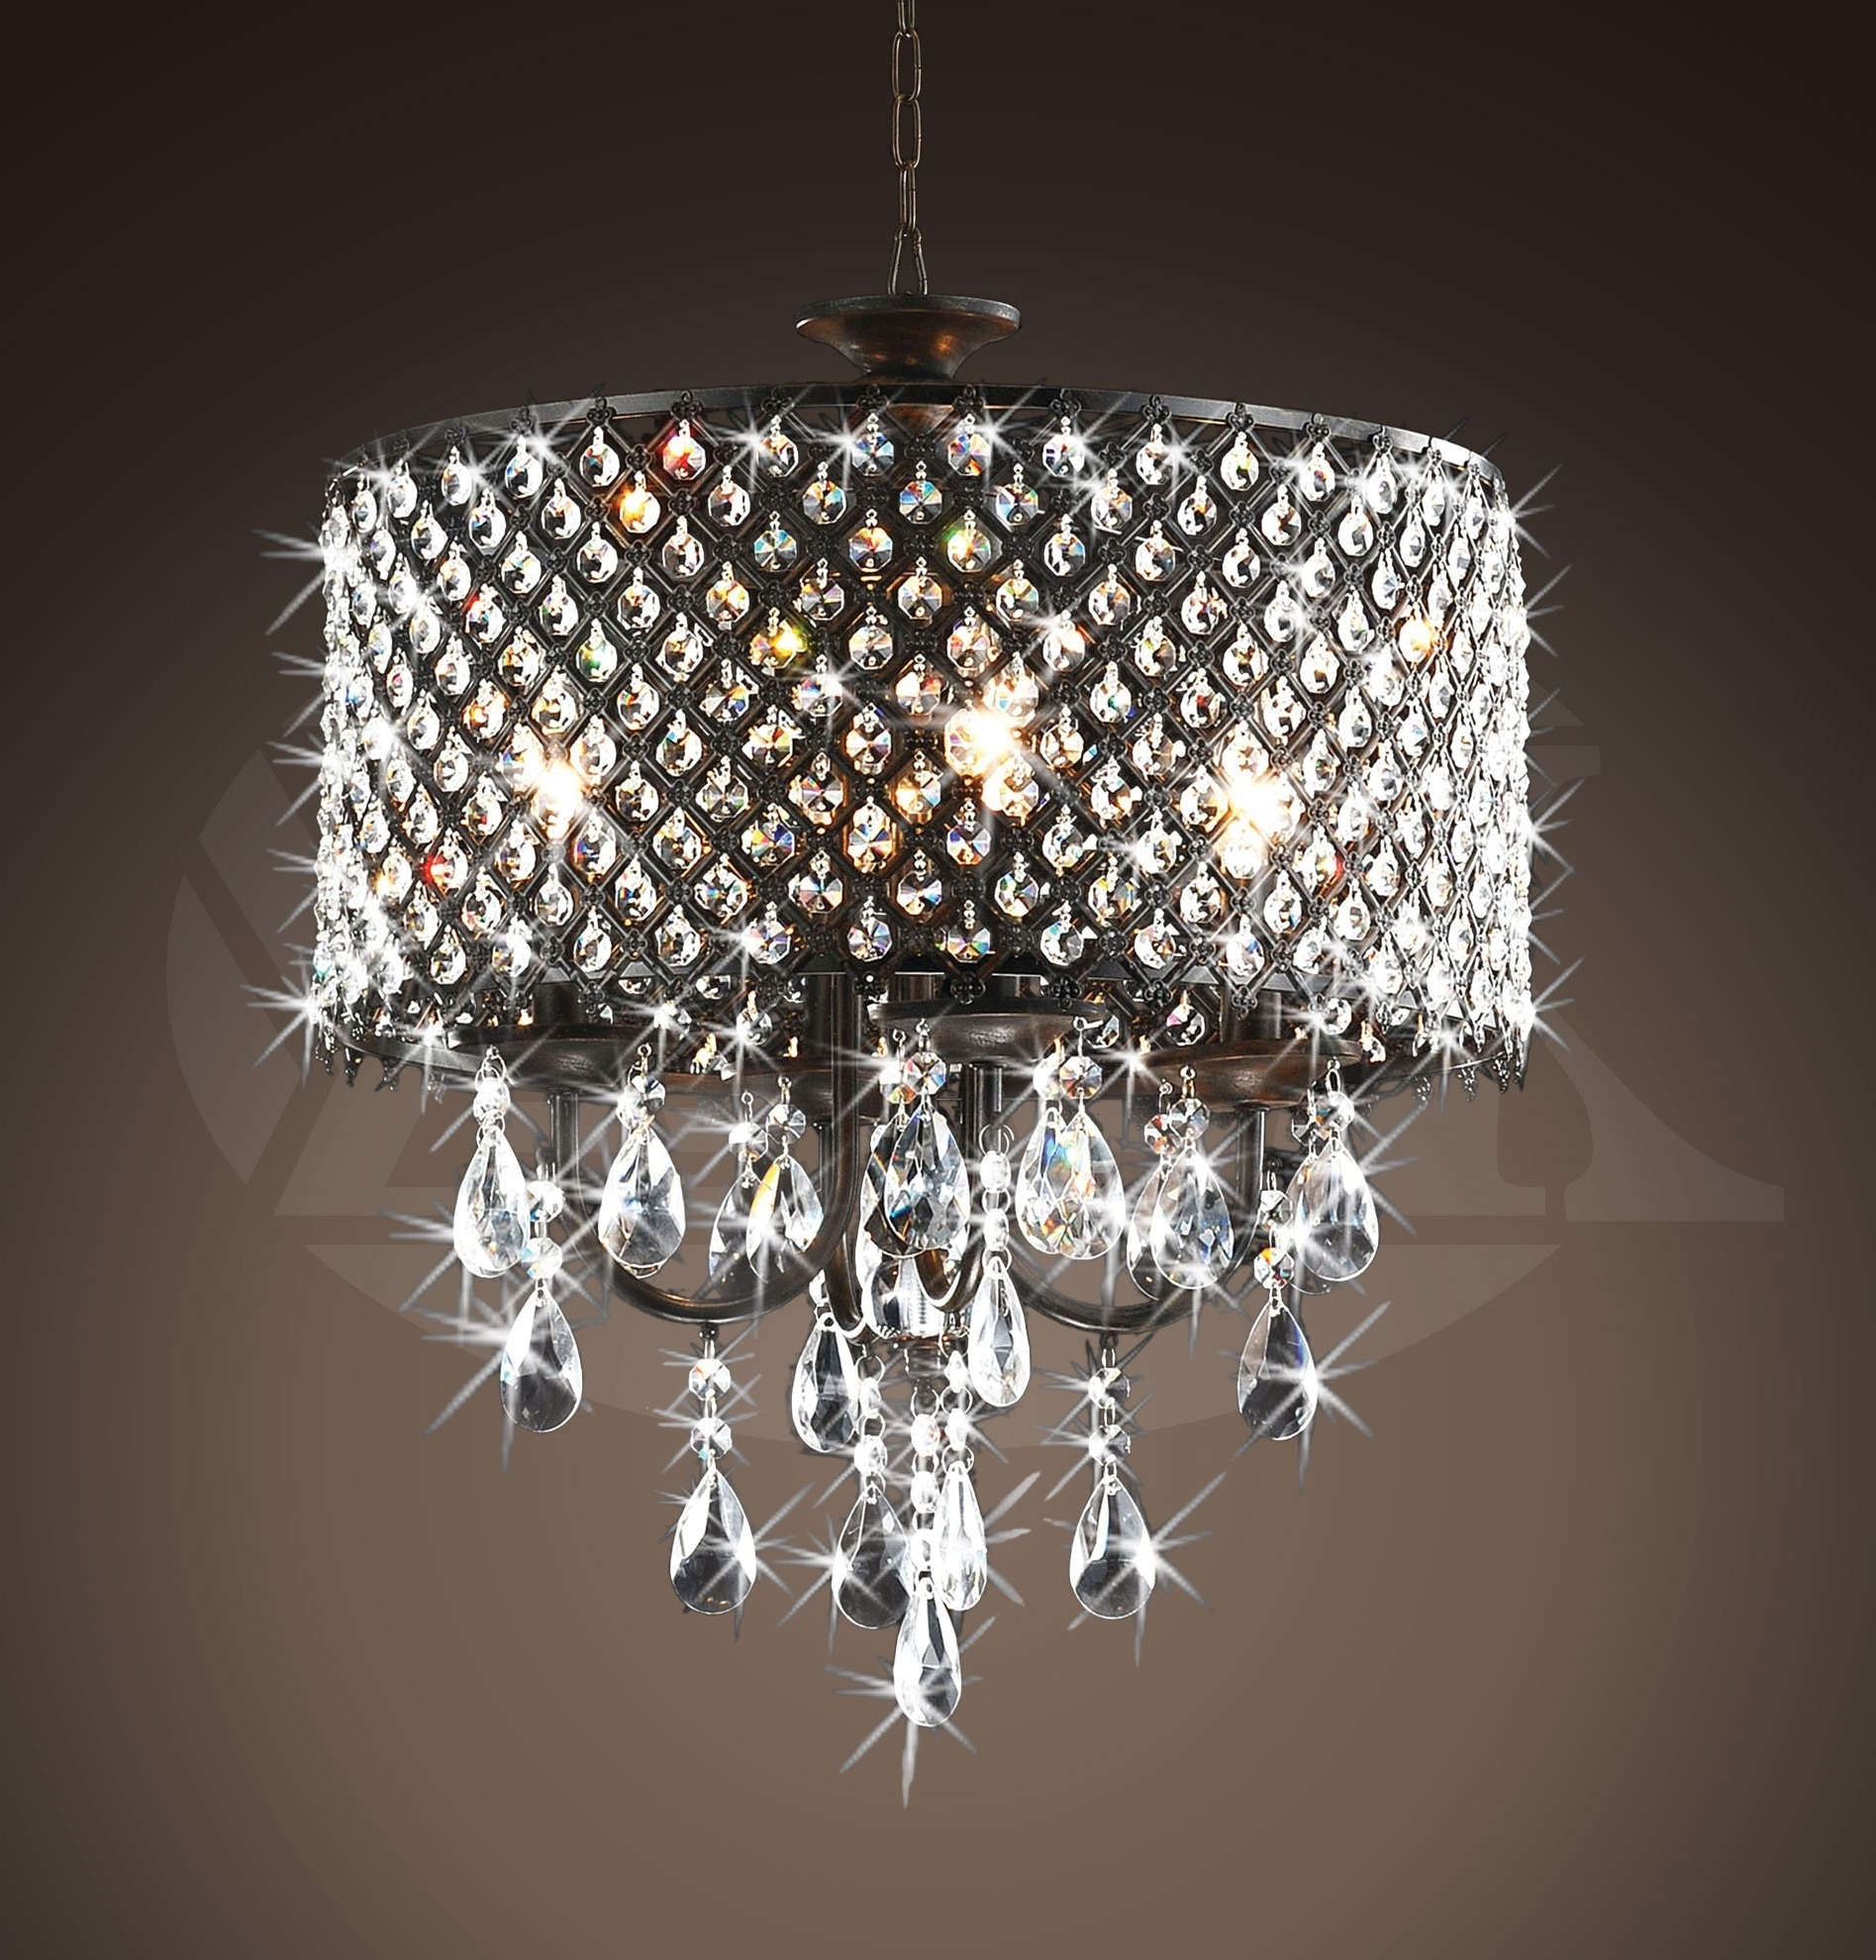 Famous Rachelle 4 Light Round Antique Bronze Brass Crystal Chandelier Pertaining To Sparkly Chandeliers (View 6 of 20)